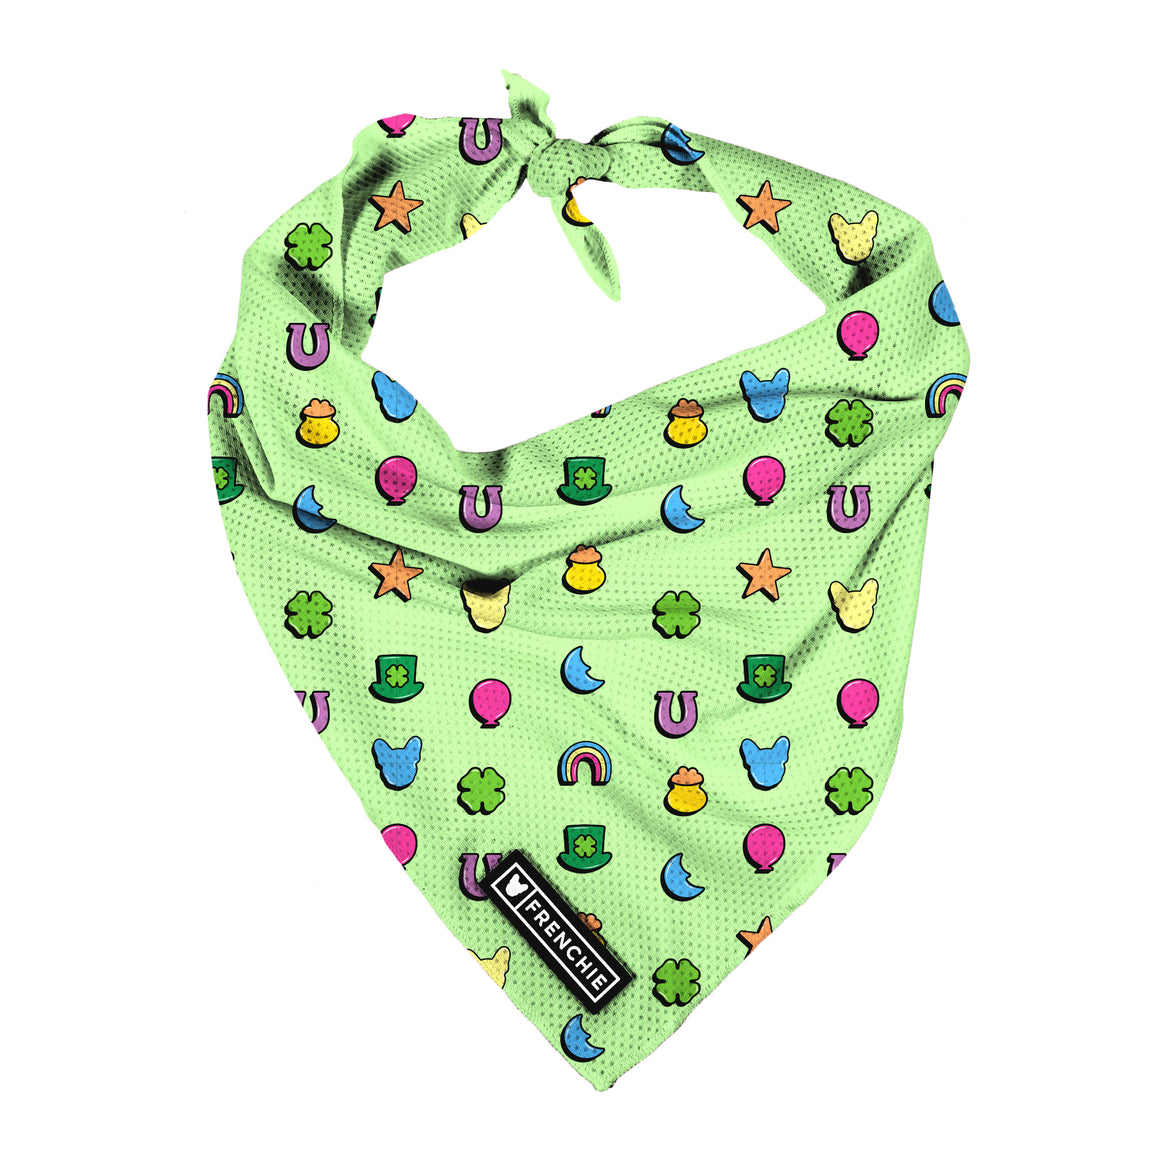 Frenchie Bandana - Good Luck Charms